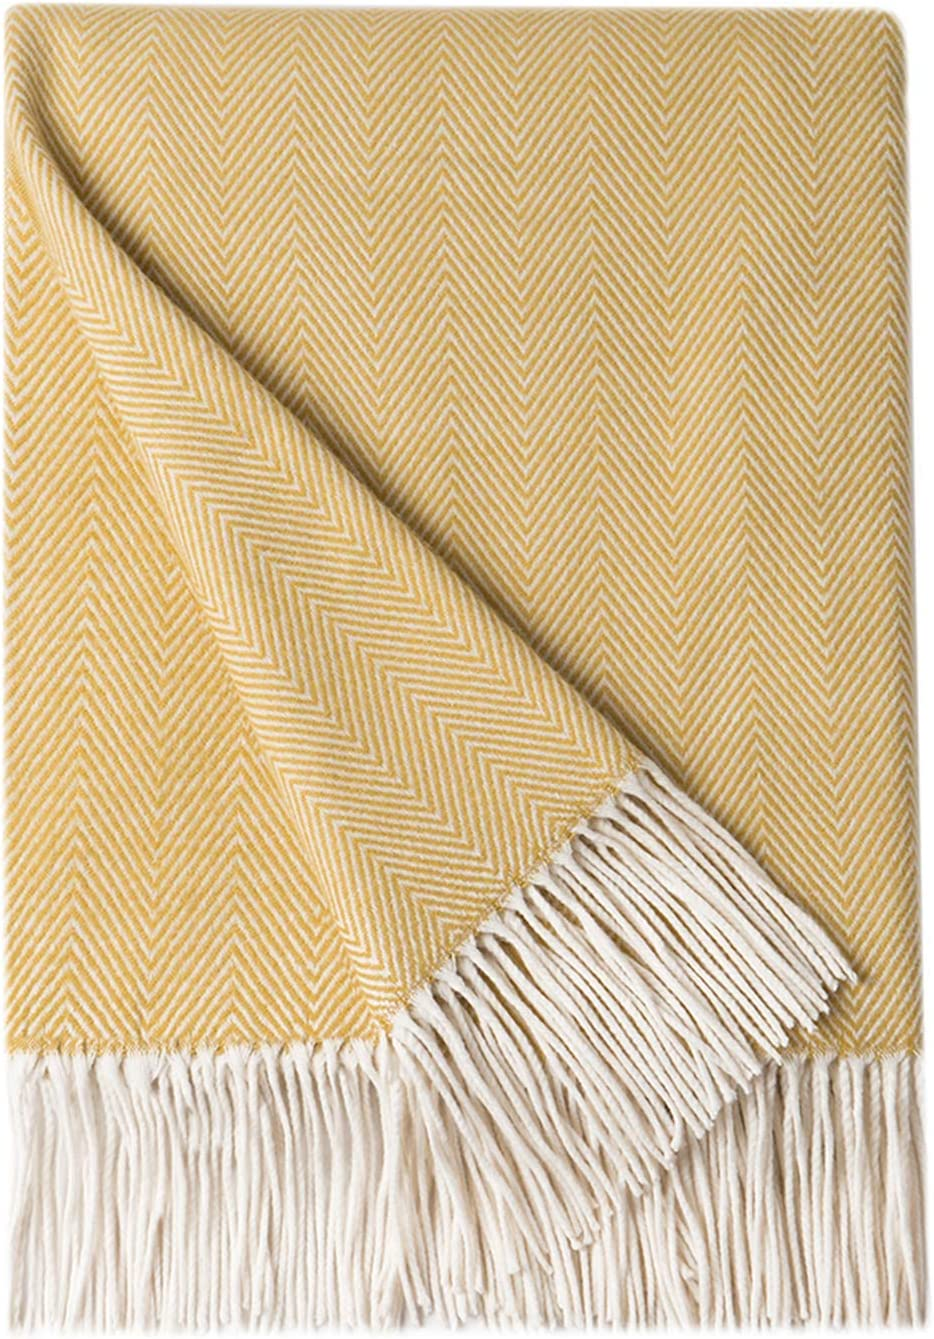 "BOURINA Decorative Herringbone Faux Cashmere Fringe Throw Blanket Lightweight Soft Cozy for Bed or Sofa Farmhouse Outdoor Throw Blankets, 50"" x 60"", Yellow"